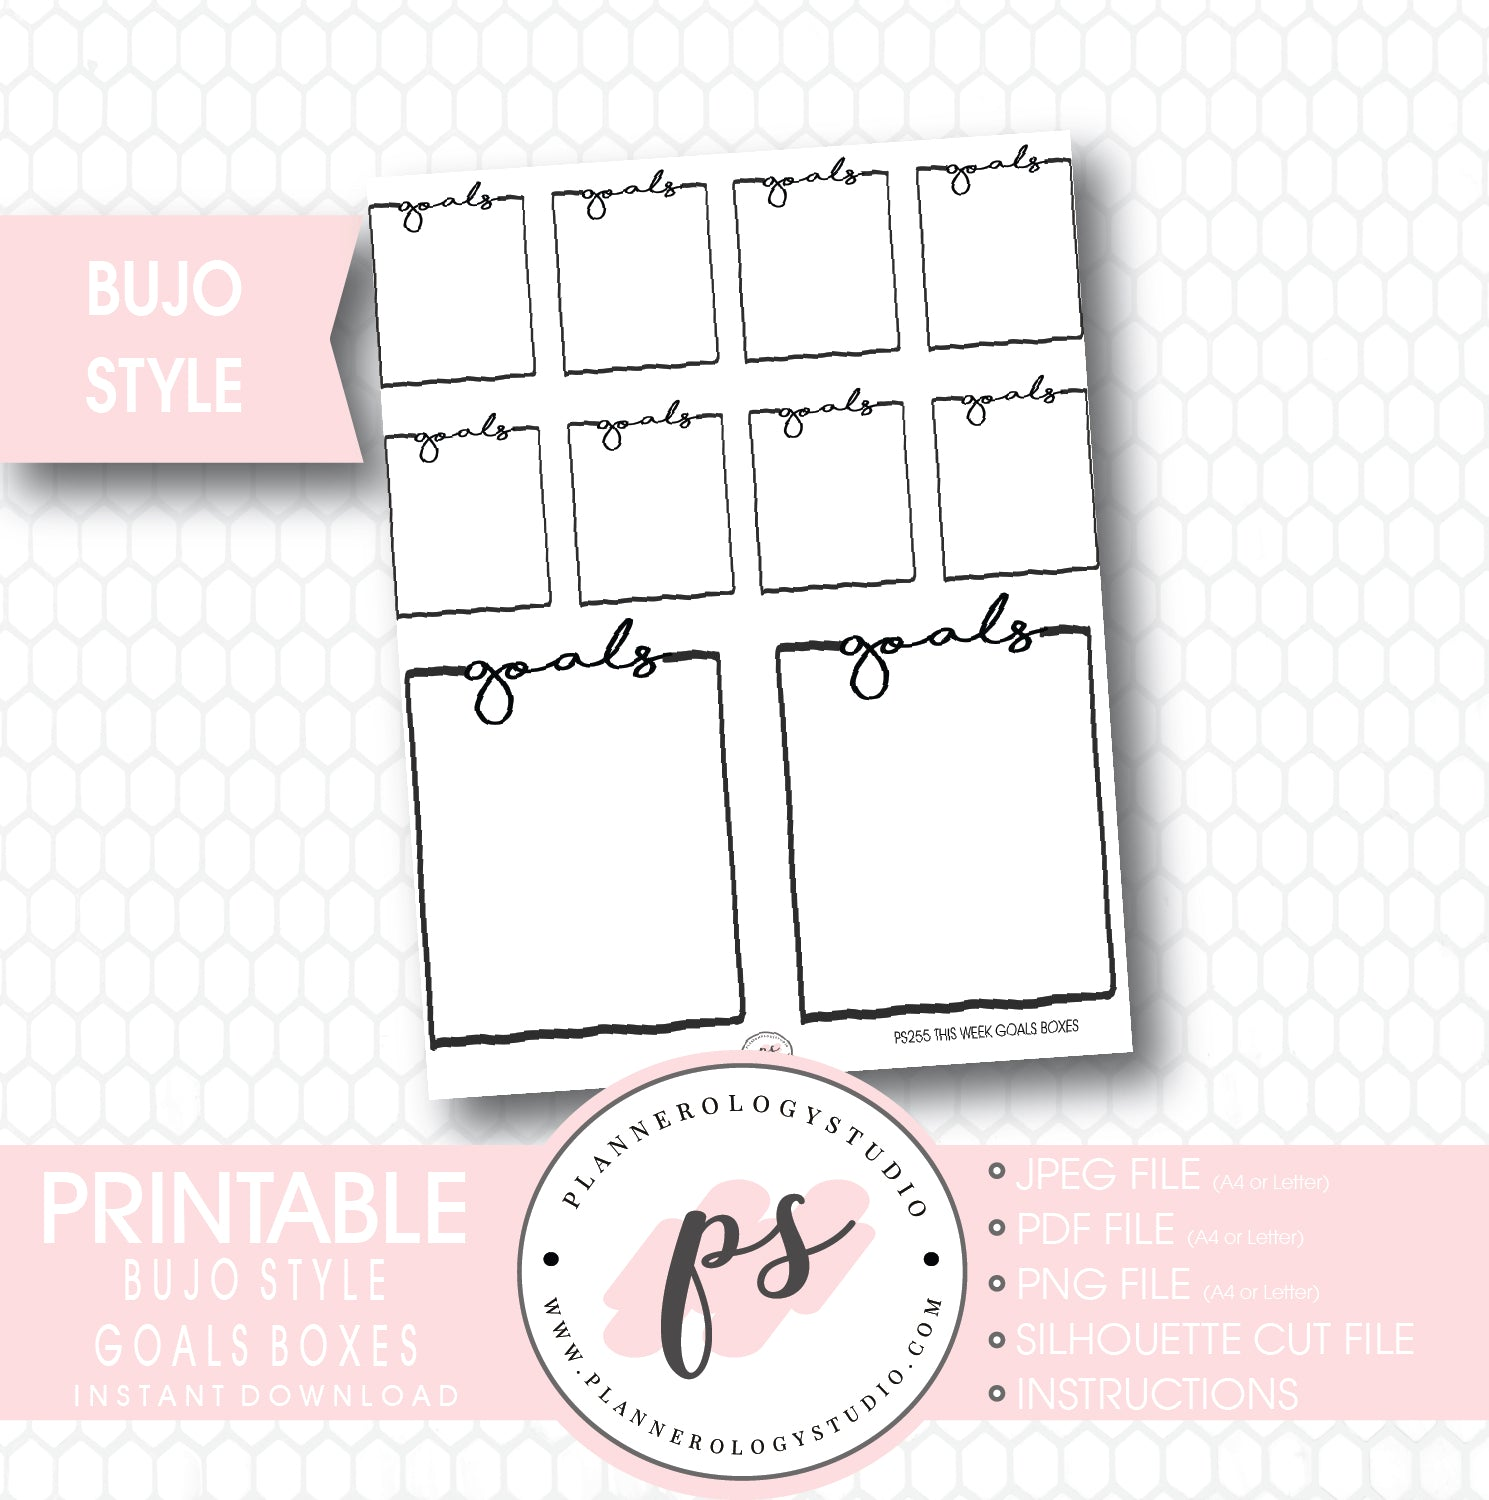 photo regarding Goals Printable named Bullet Magazine Bujo Objectives Packing containers Printable Planner Stickers